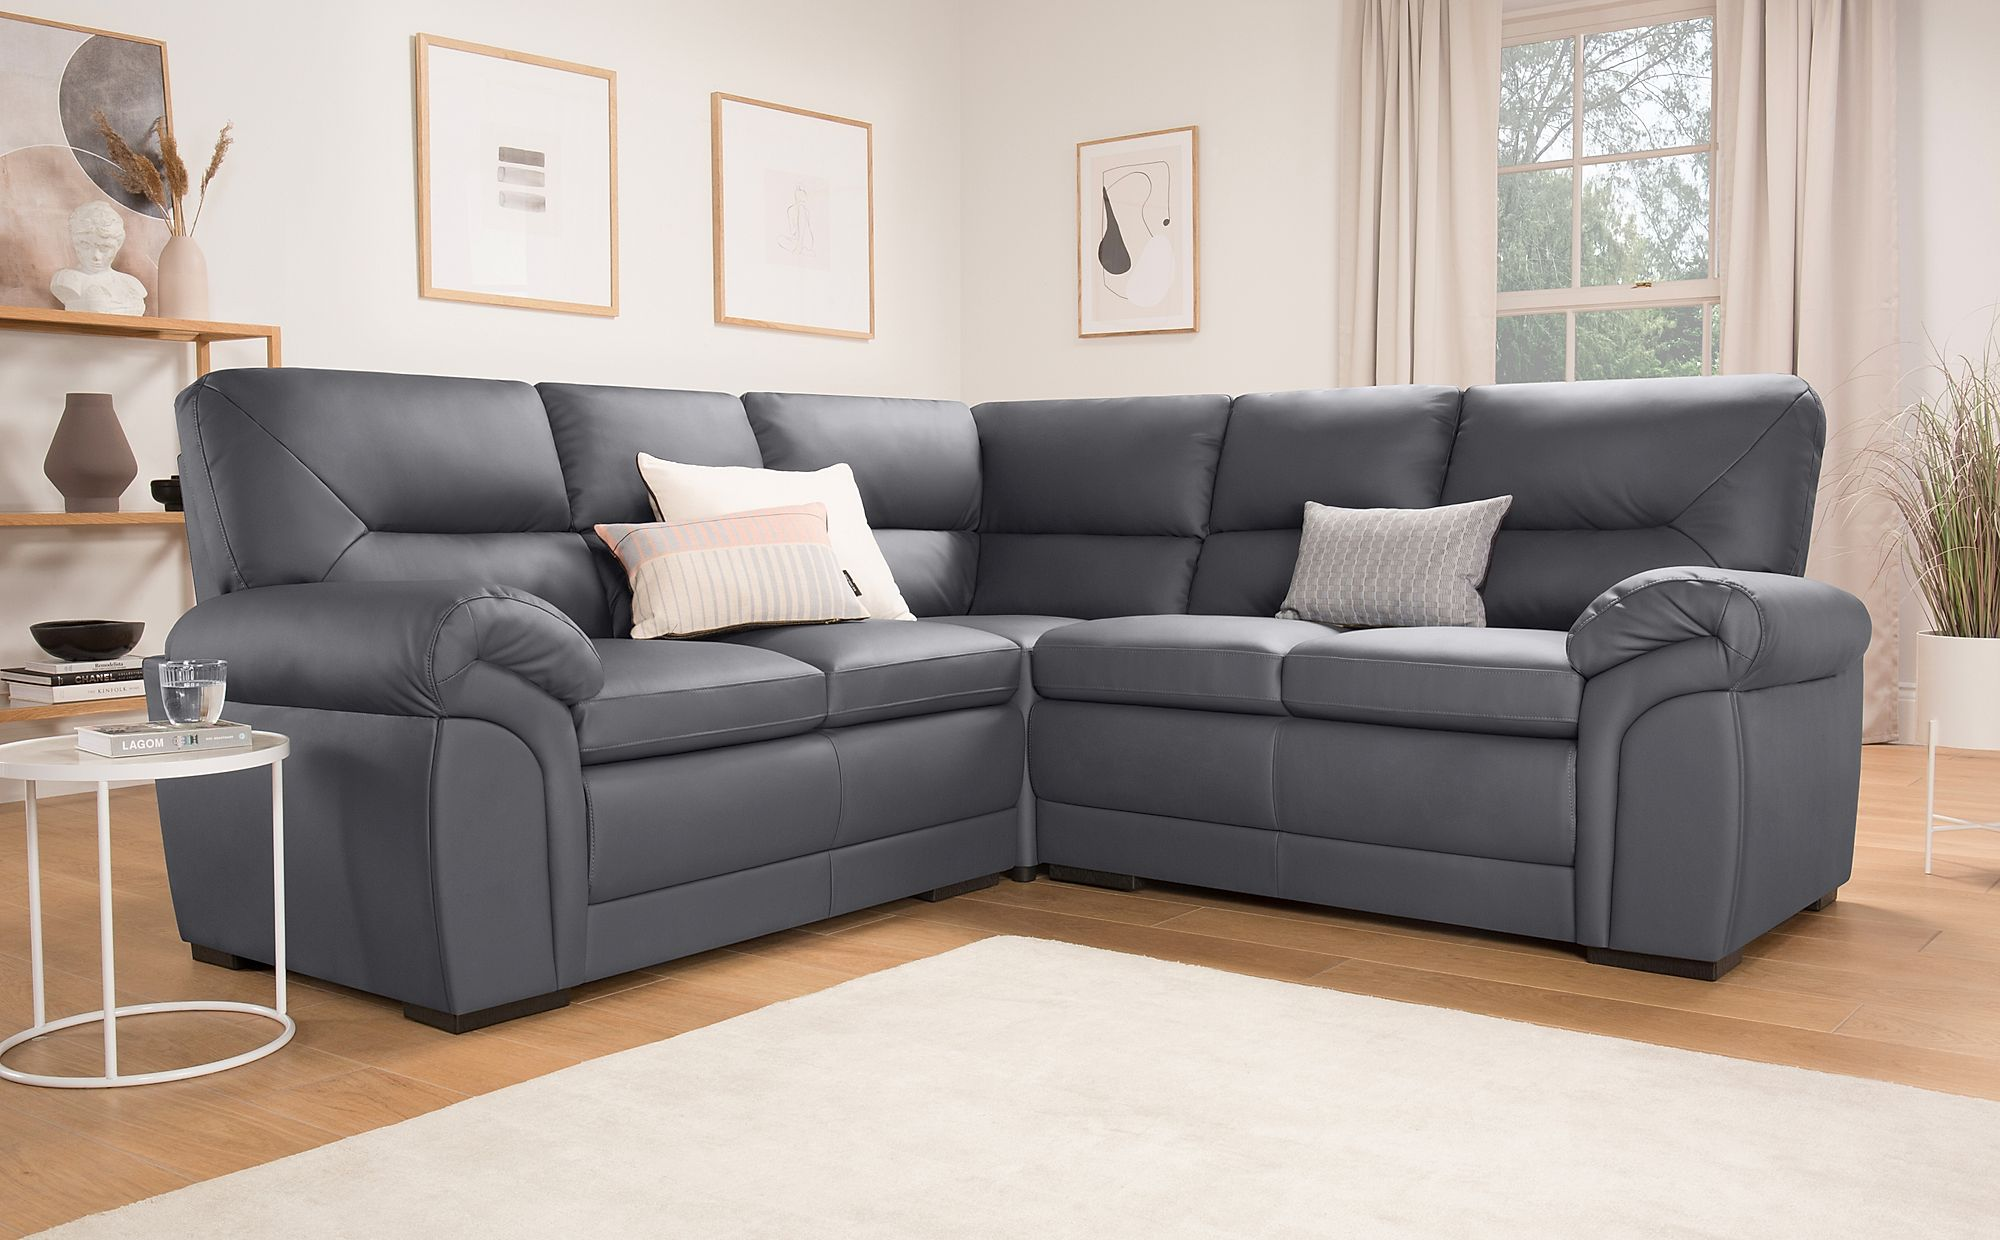 Bromley Grey Leather Corner Sofa Only £899.99 | Furniture Choice